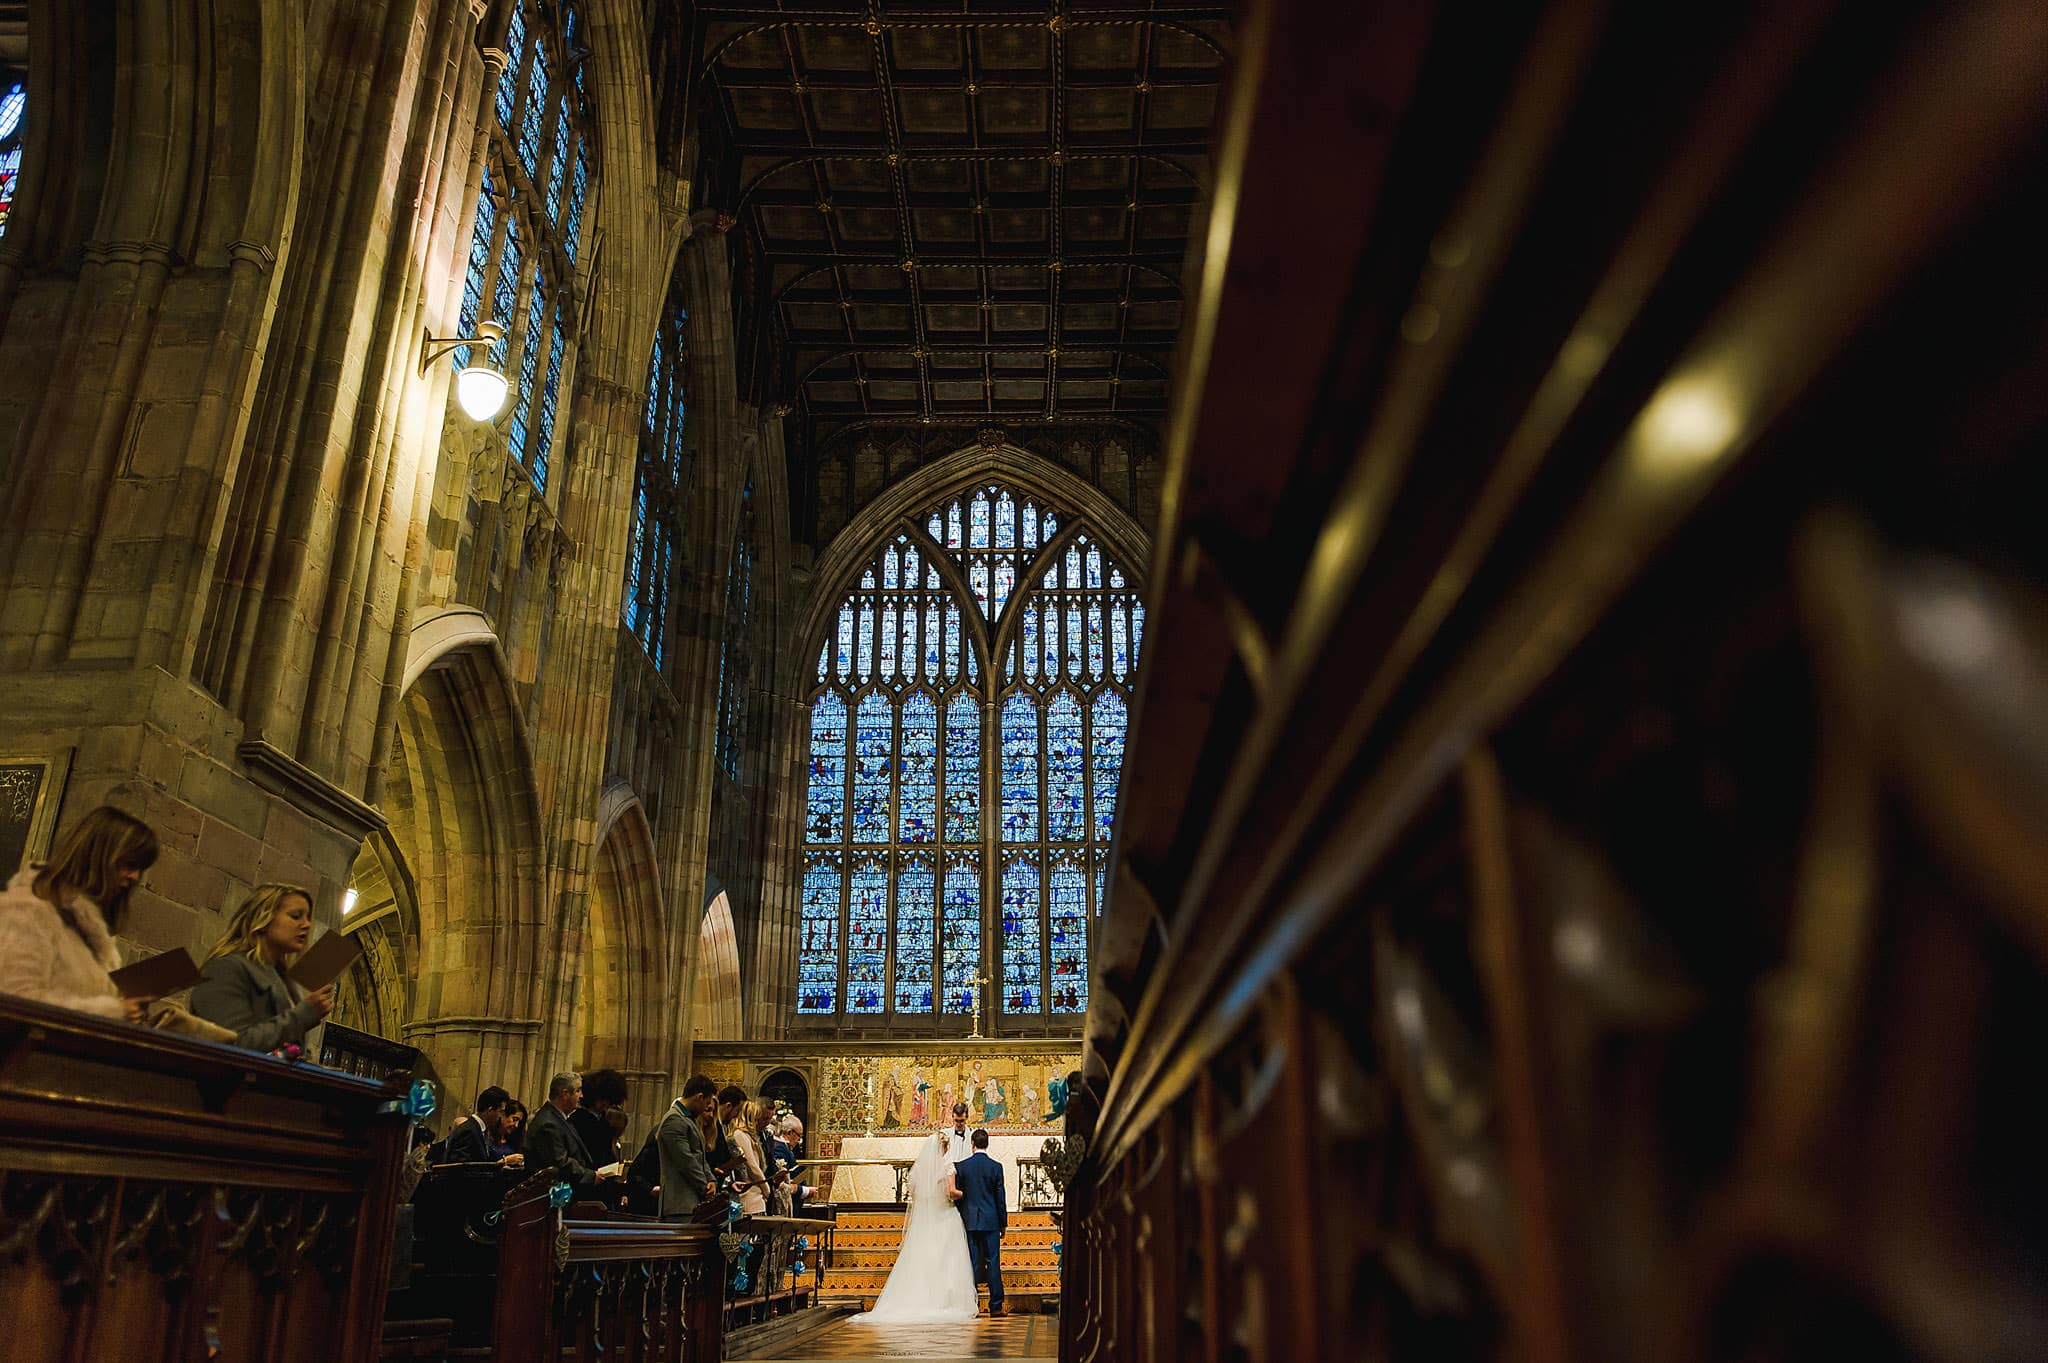 deer park hall wedding 39b - Deer Park Hall - Wedding Photography West Midlands